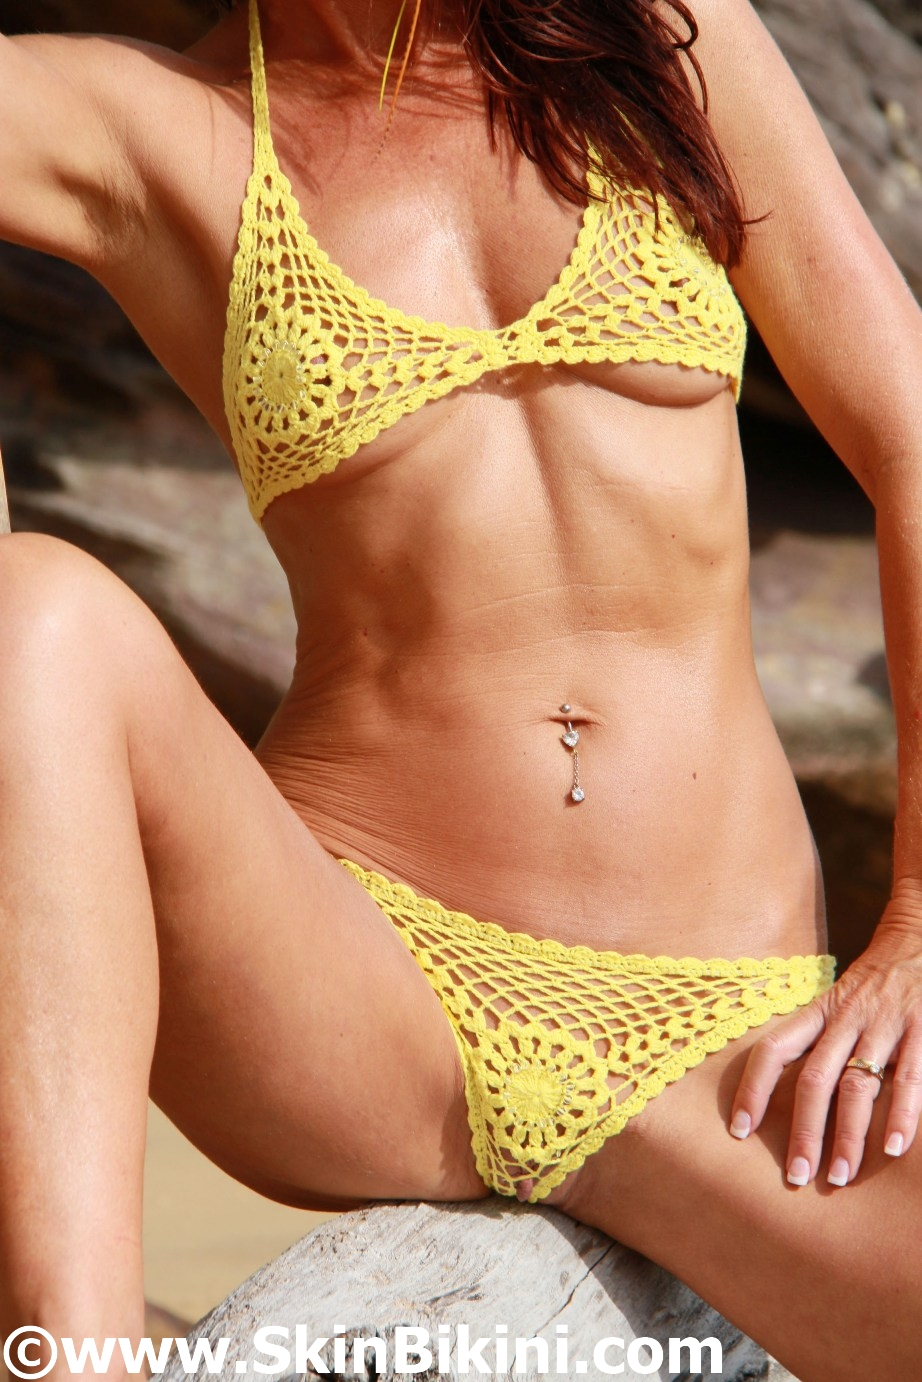 41481 - Beaded Sexy Floral Mini Bikini Hand-Crochet yellow font view at skinbikini.com